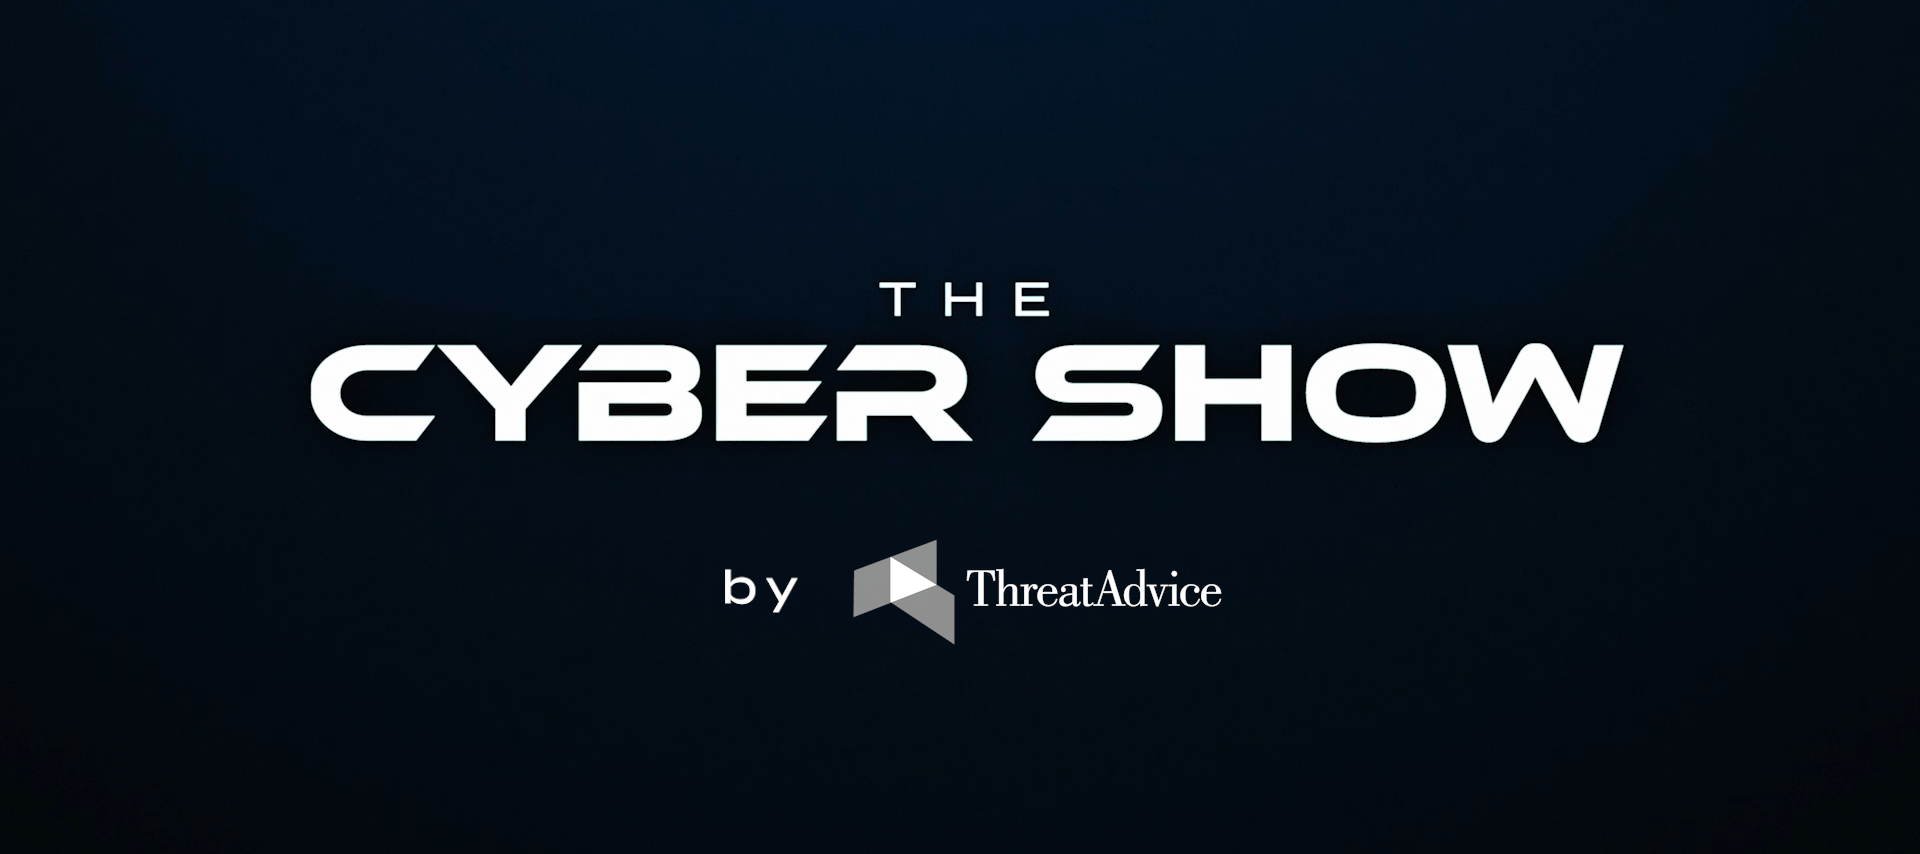 Introducing The Cyber Show, Episode 1